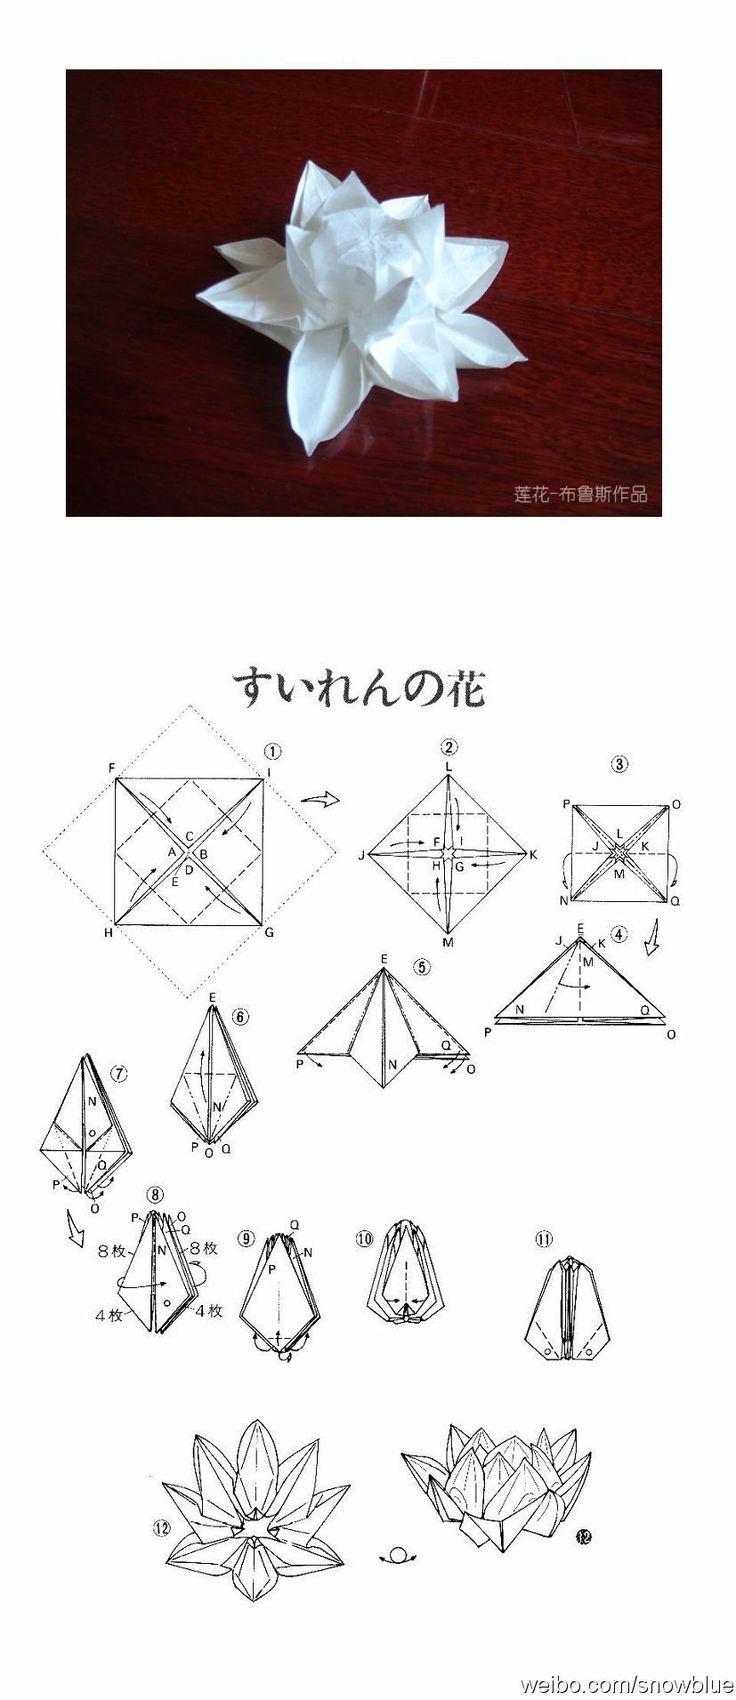 25 best origami images by a t on pinterest paper crafts origami lotus paper flower folding instructions origami instruction on imgfave izmirmasajfo